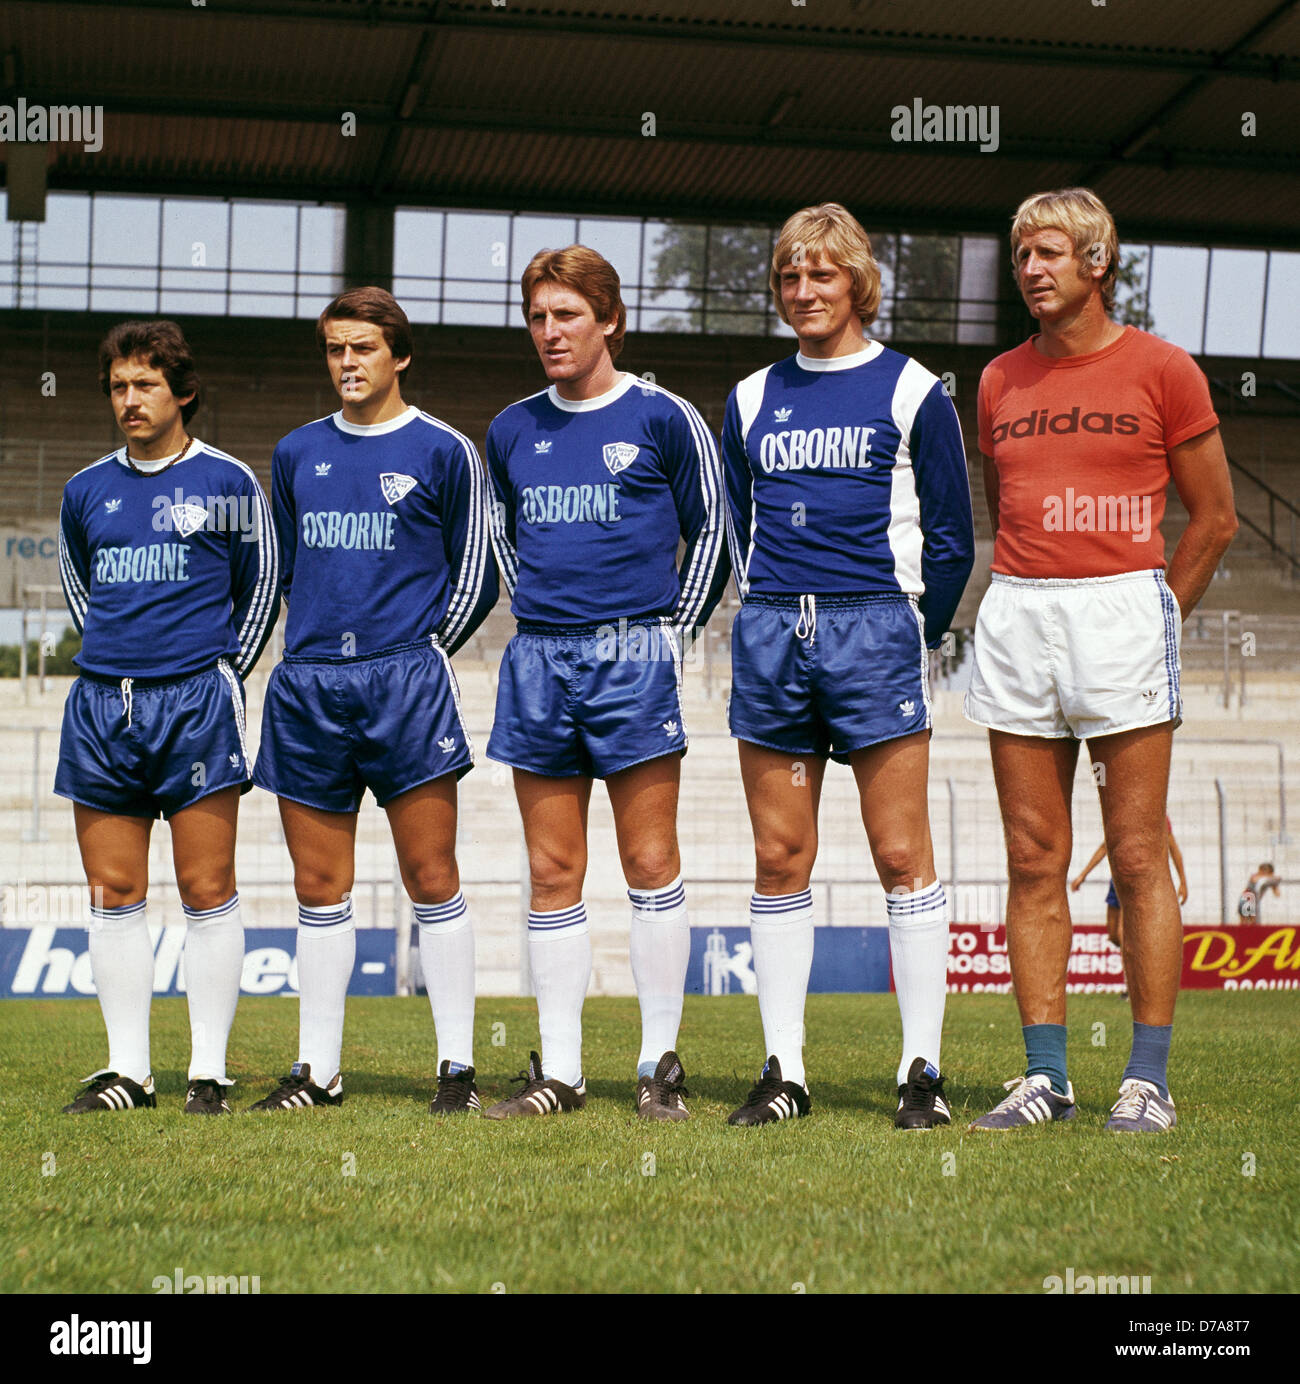 Sports football bundesliga 1977 1978 vfl bochum team for Sport bundesliga